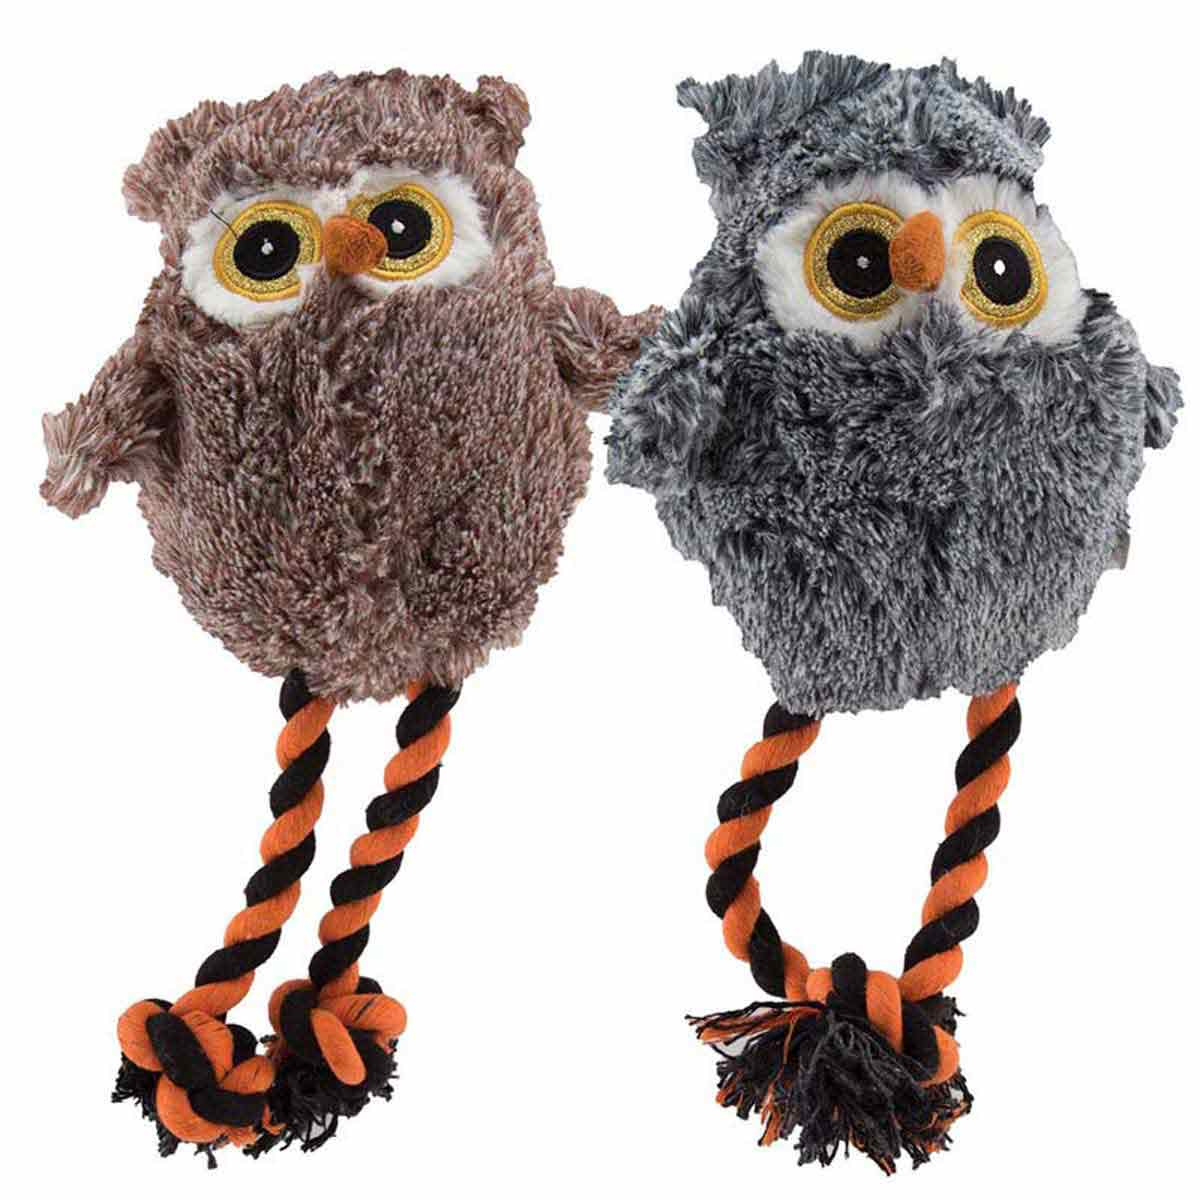 6 inch Dawgeee Toy Owl for Dogs